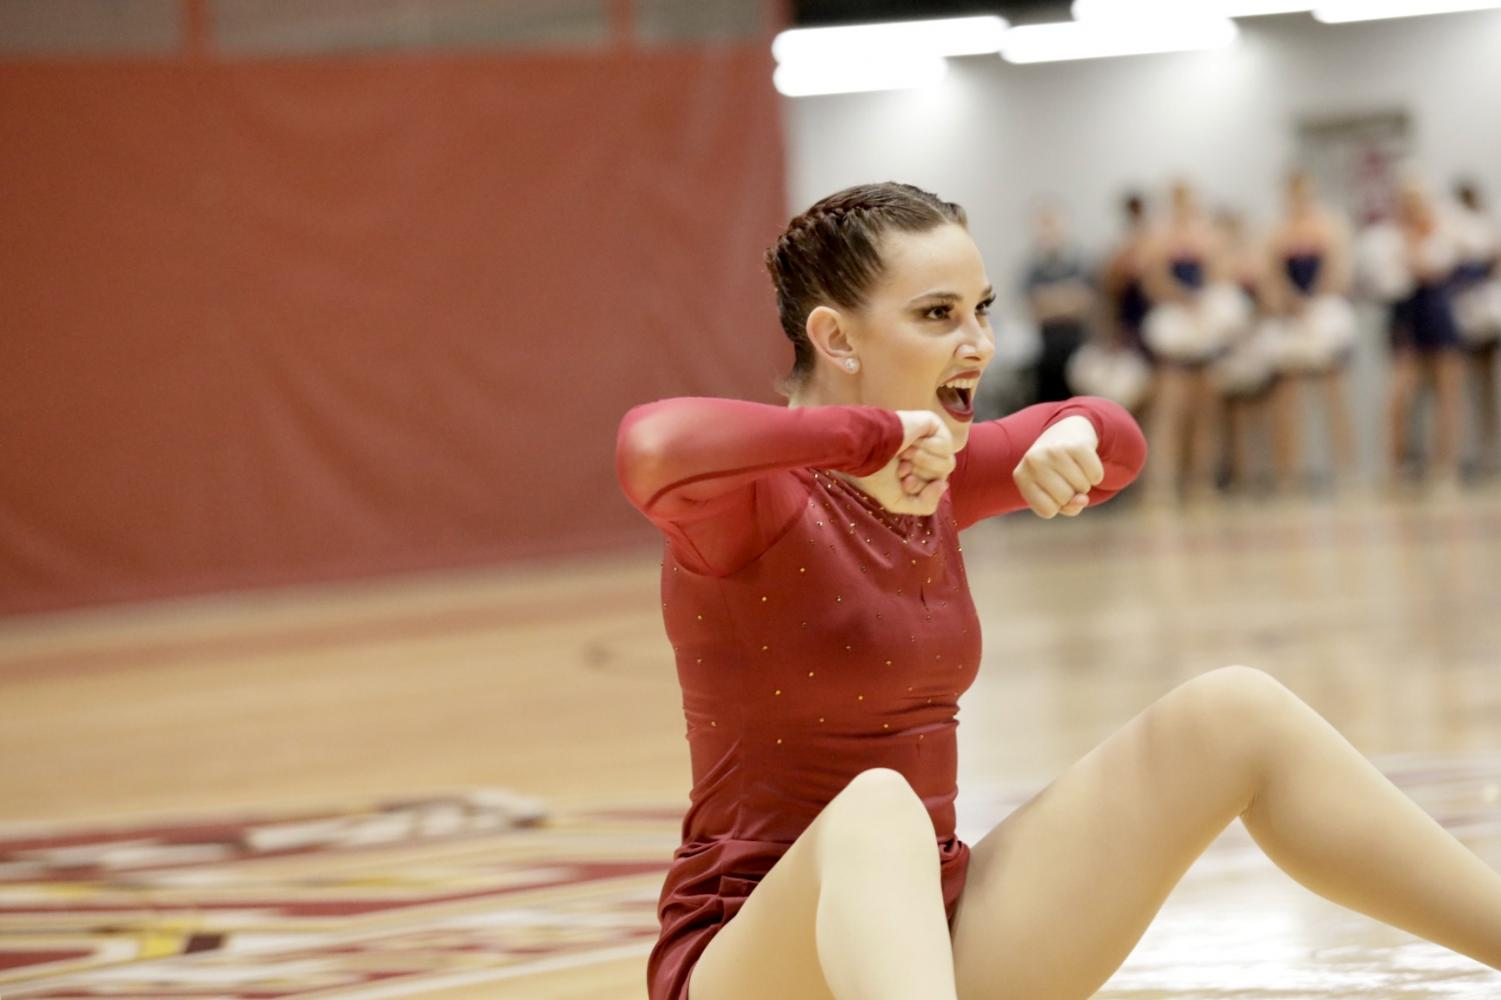 Music industry studies senior Beth Cohen performs at the SSAC Competitive Dance Championship in The Den on Feb. 1, 2019. Loyola earned a record amount of point in the Learfield Cup standings.